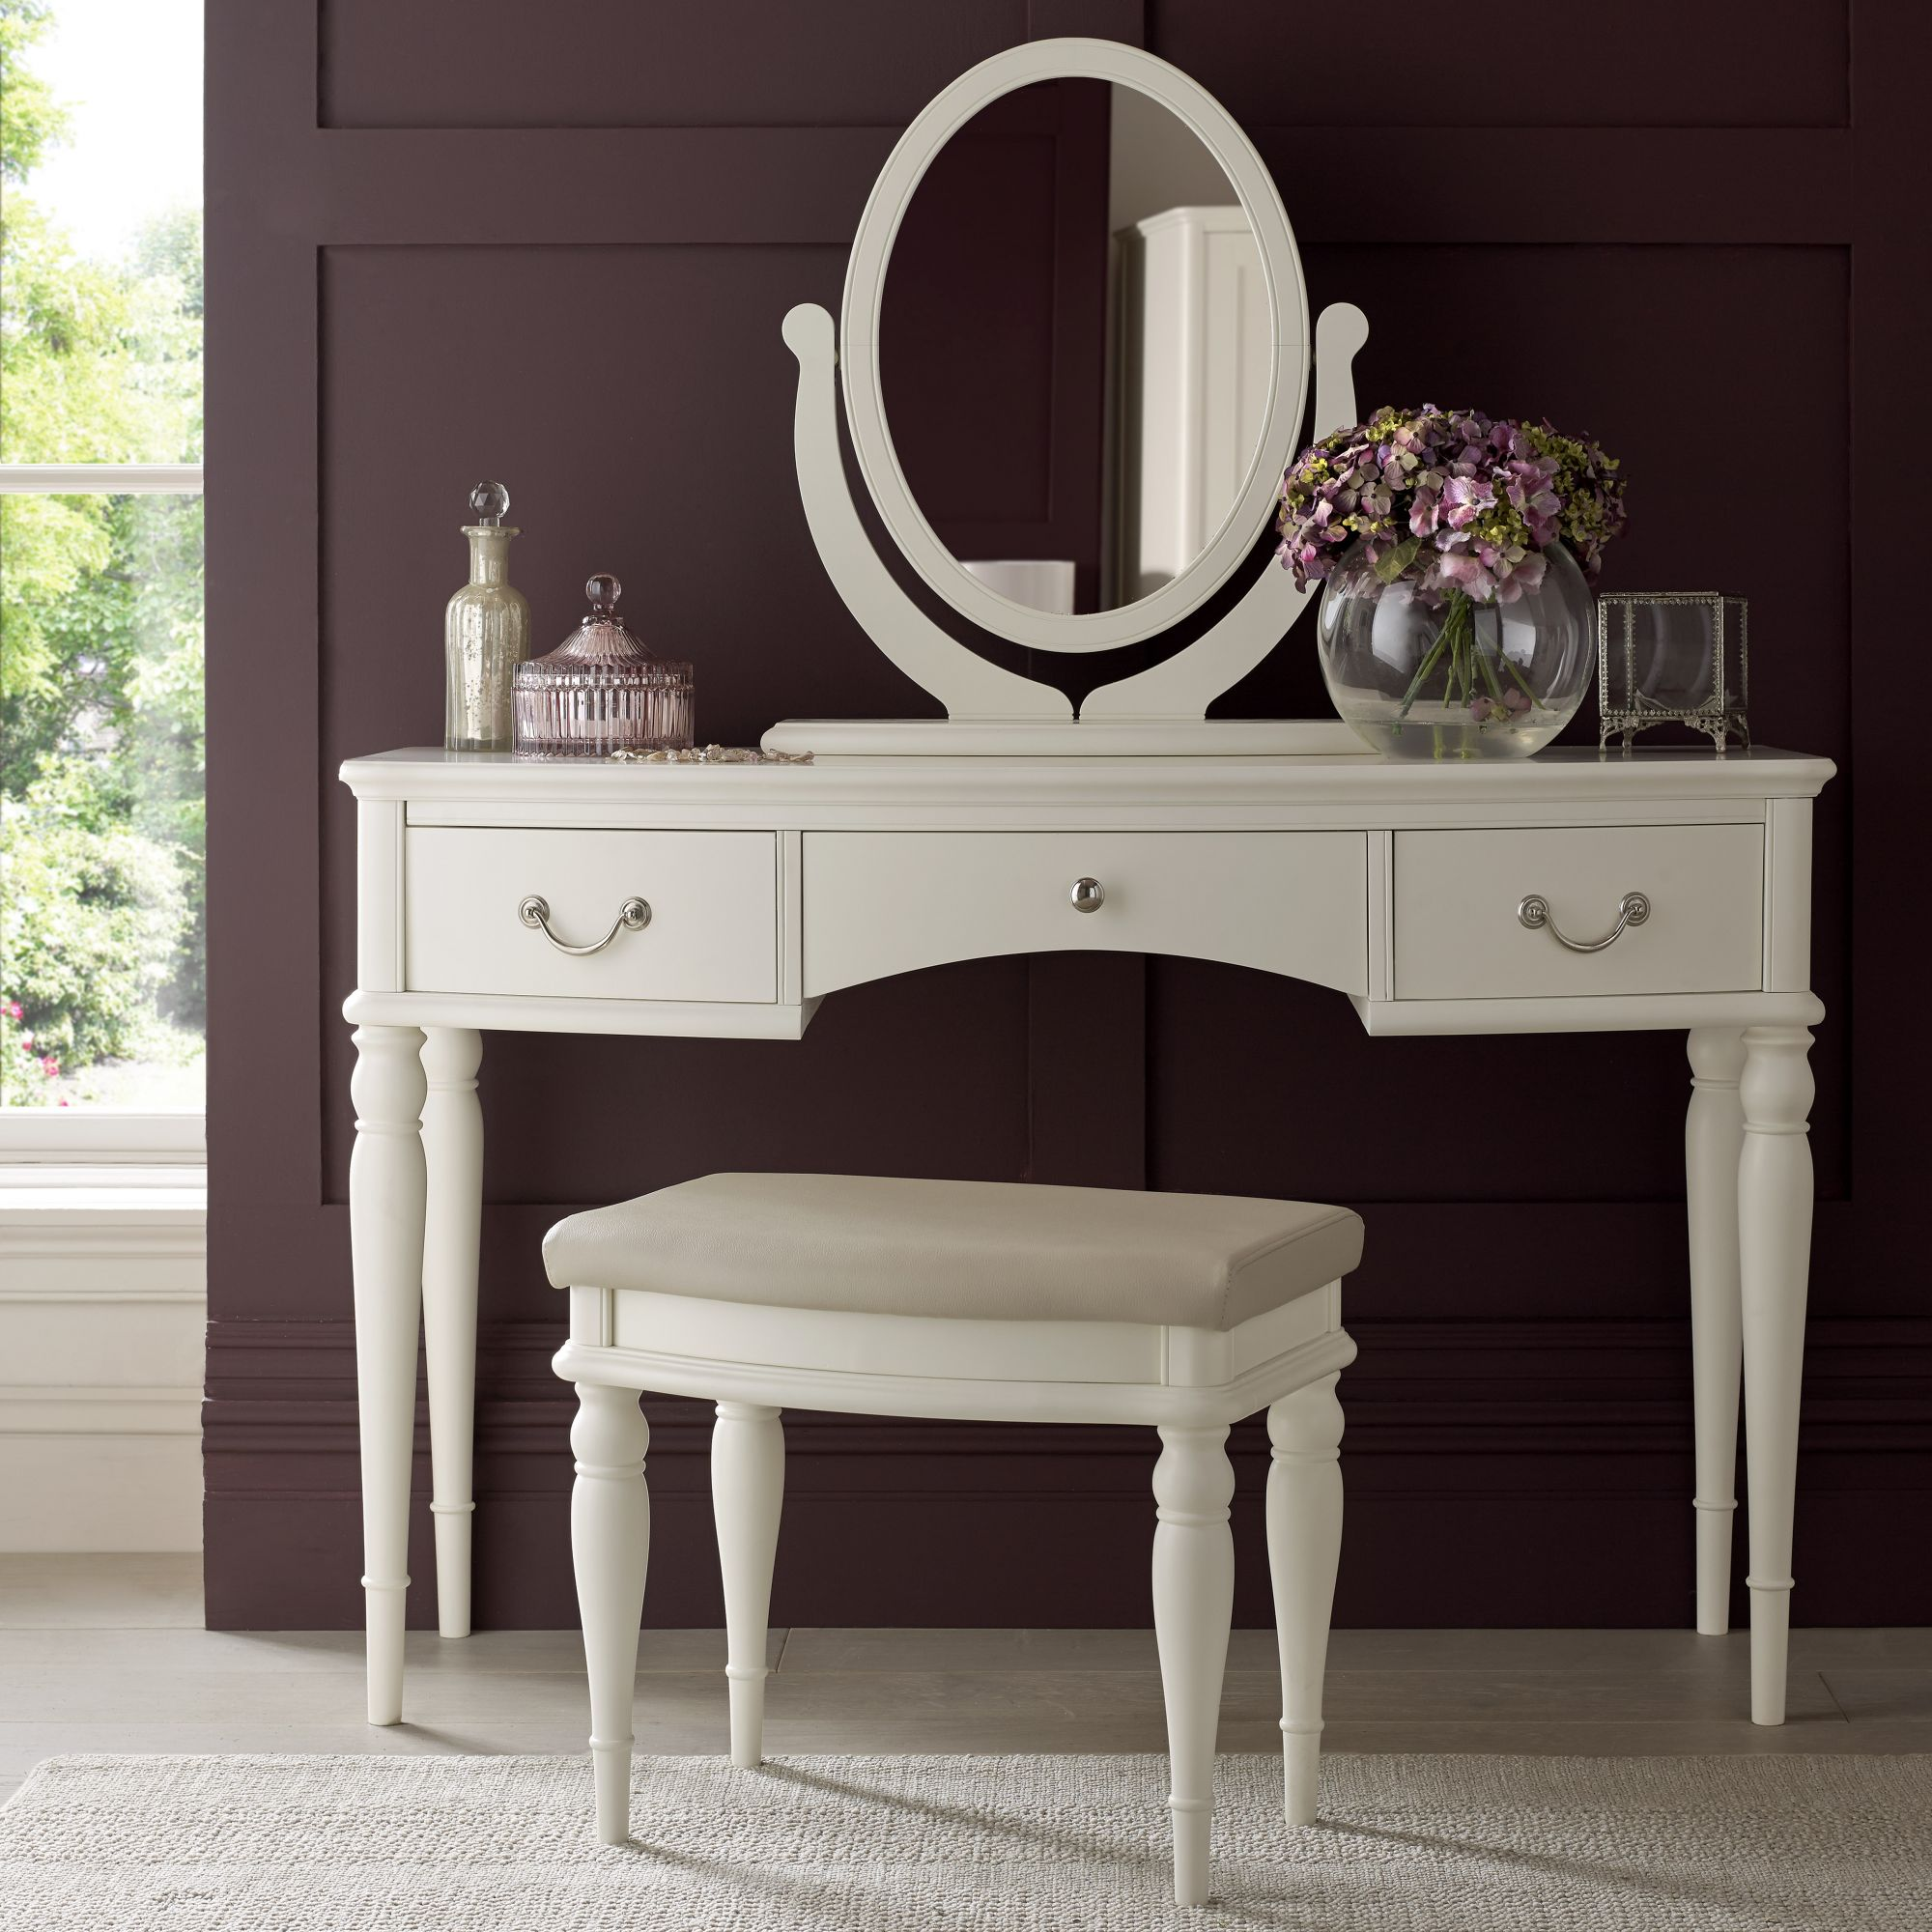 vanity unit paris ivory